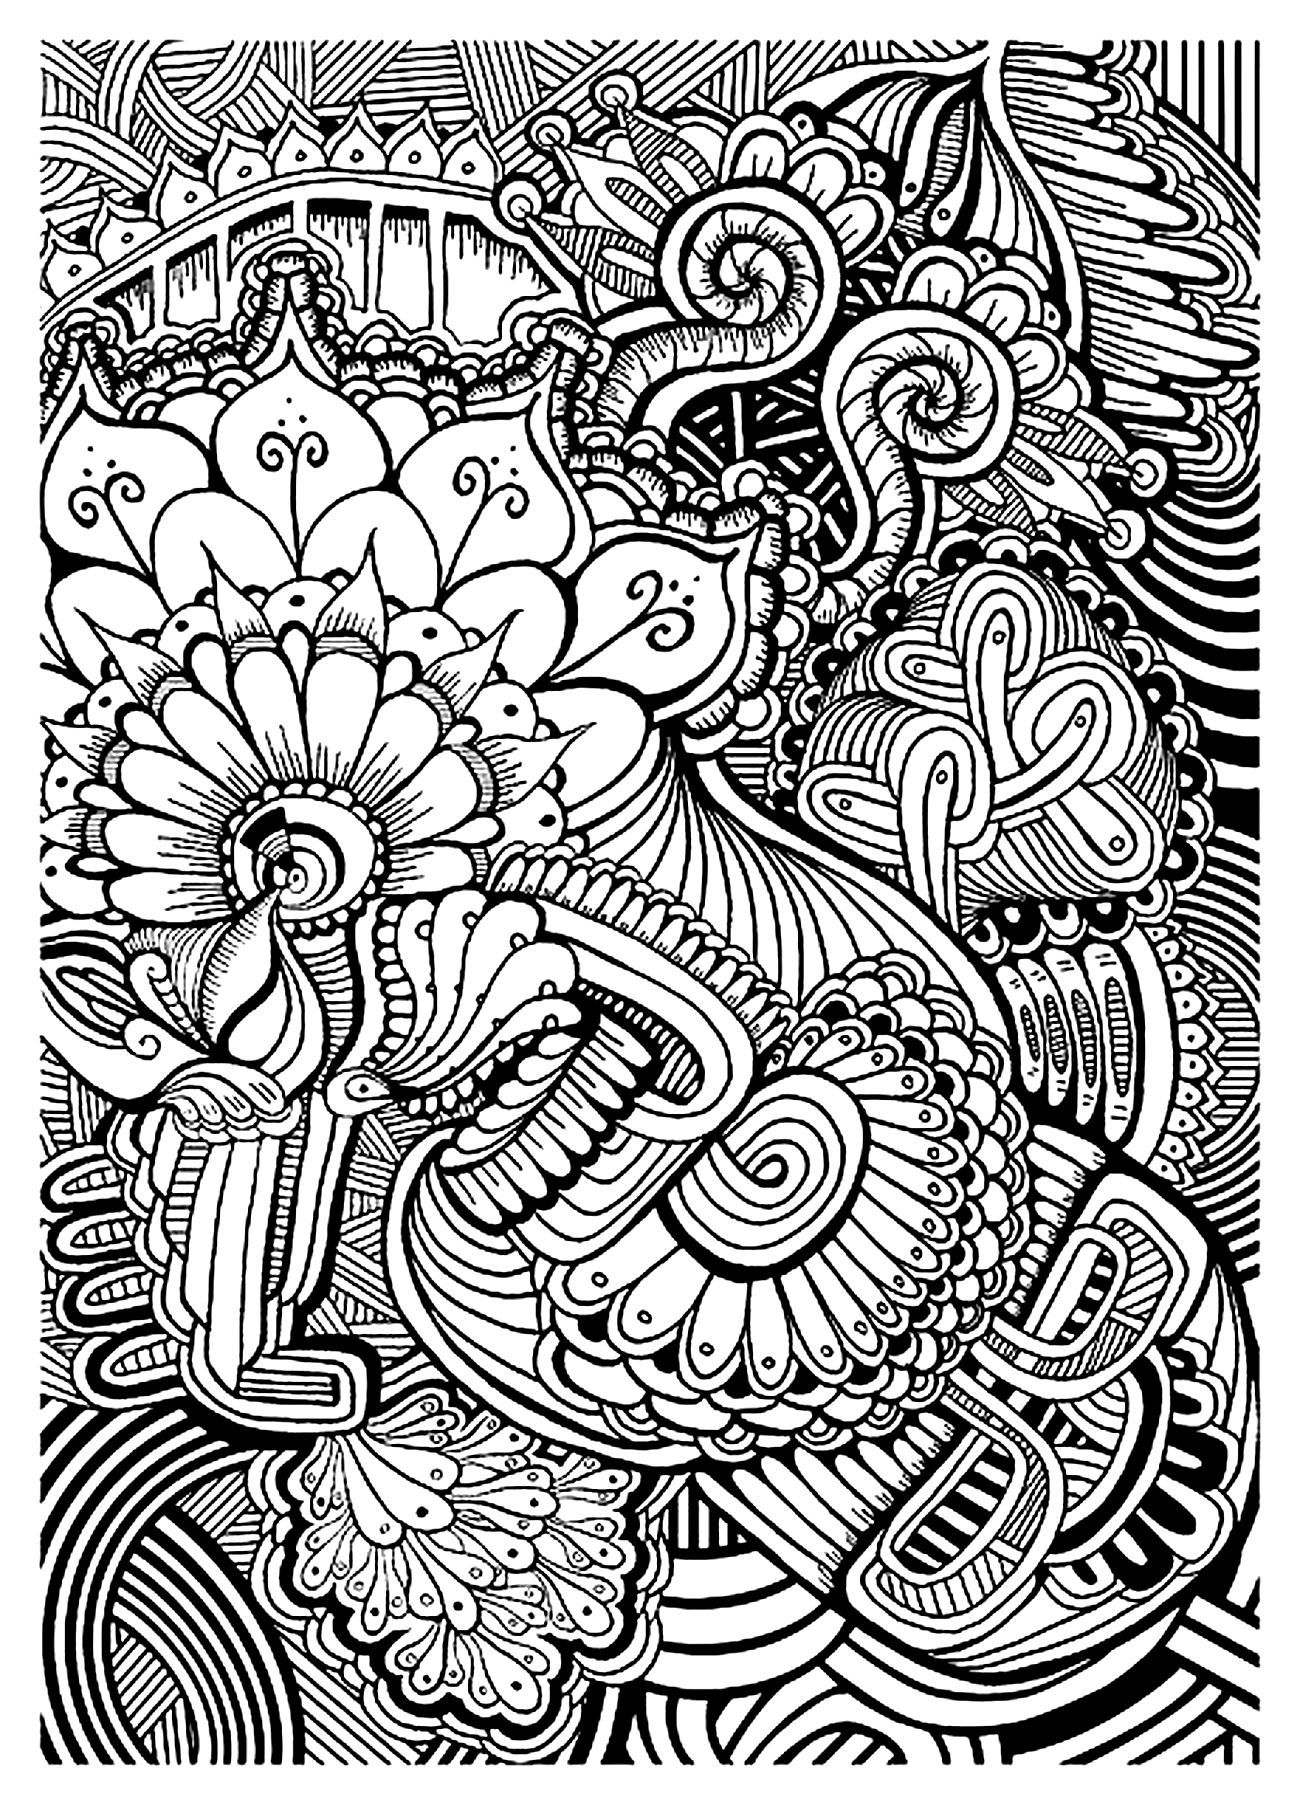 Coloring Adult Zen Anti Stress Relax To Print